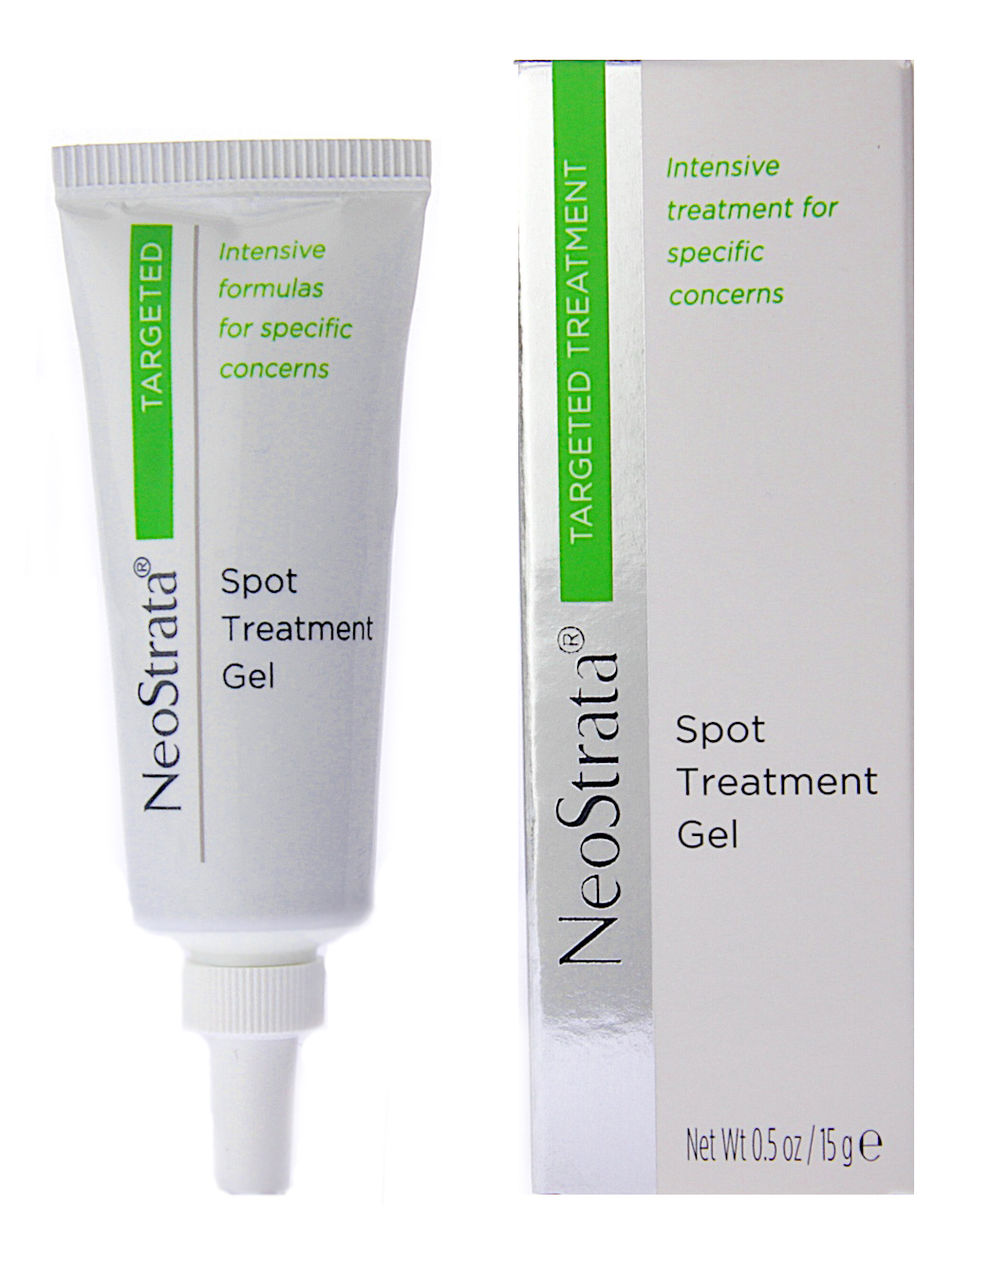 NeoStrata Targeted Гель подсушивающий (NeoCeuticals Spot Treatment Gel), 15 гр.